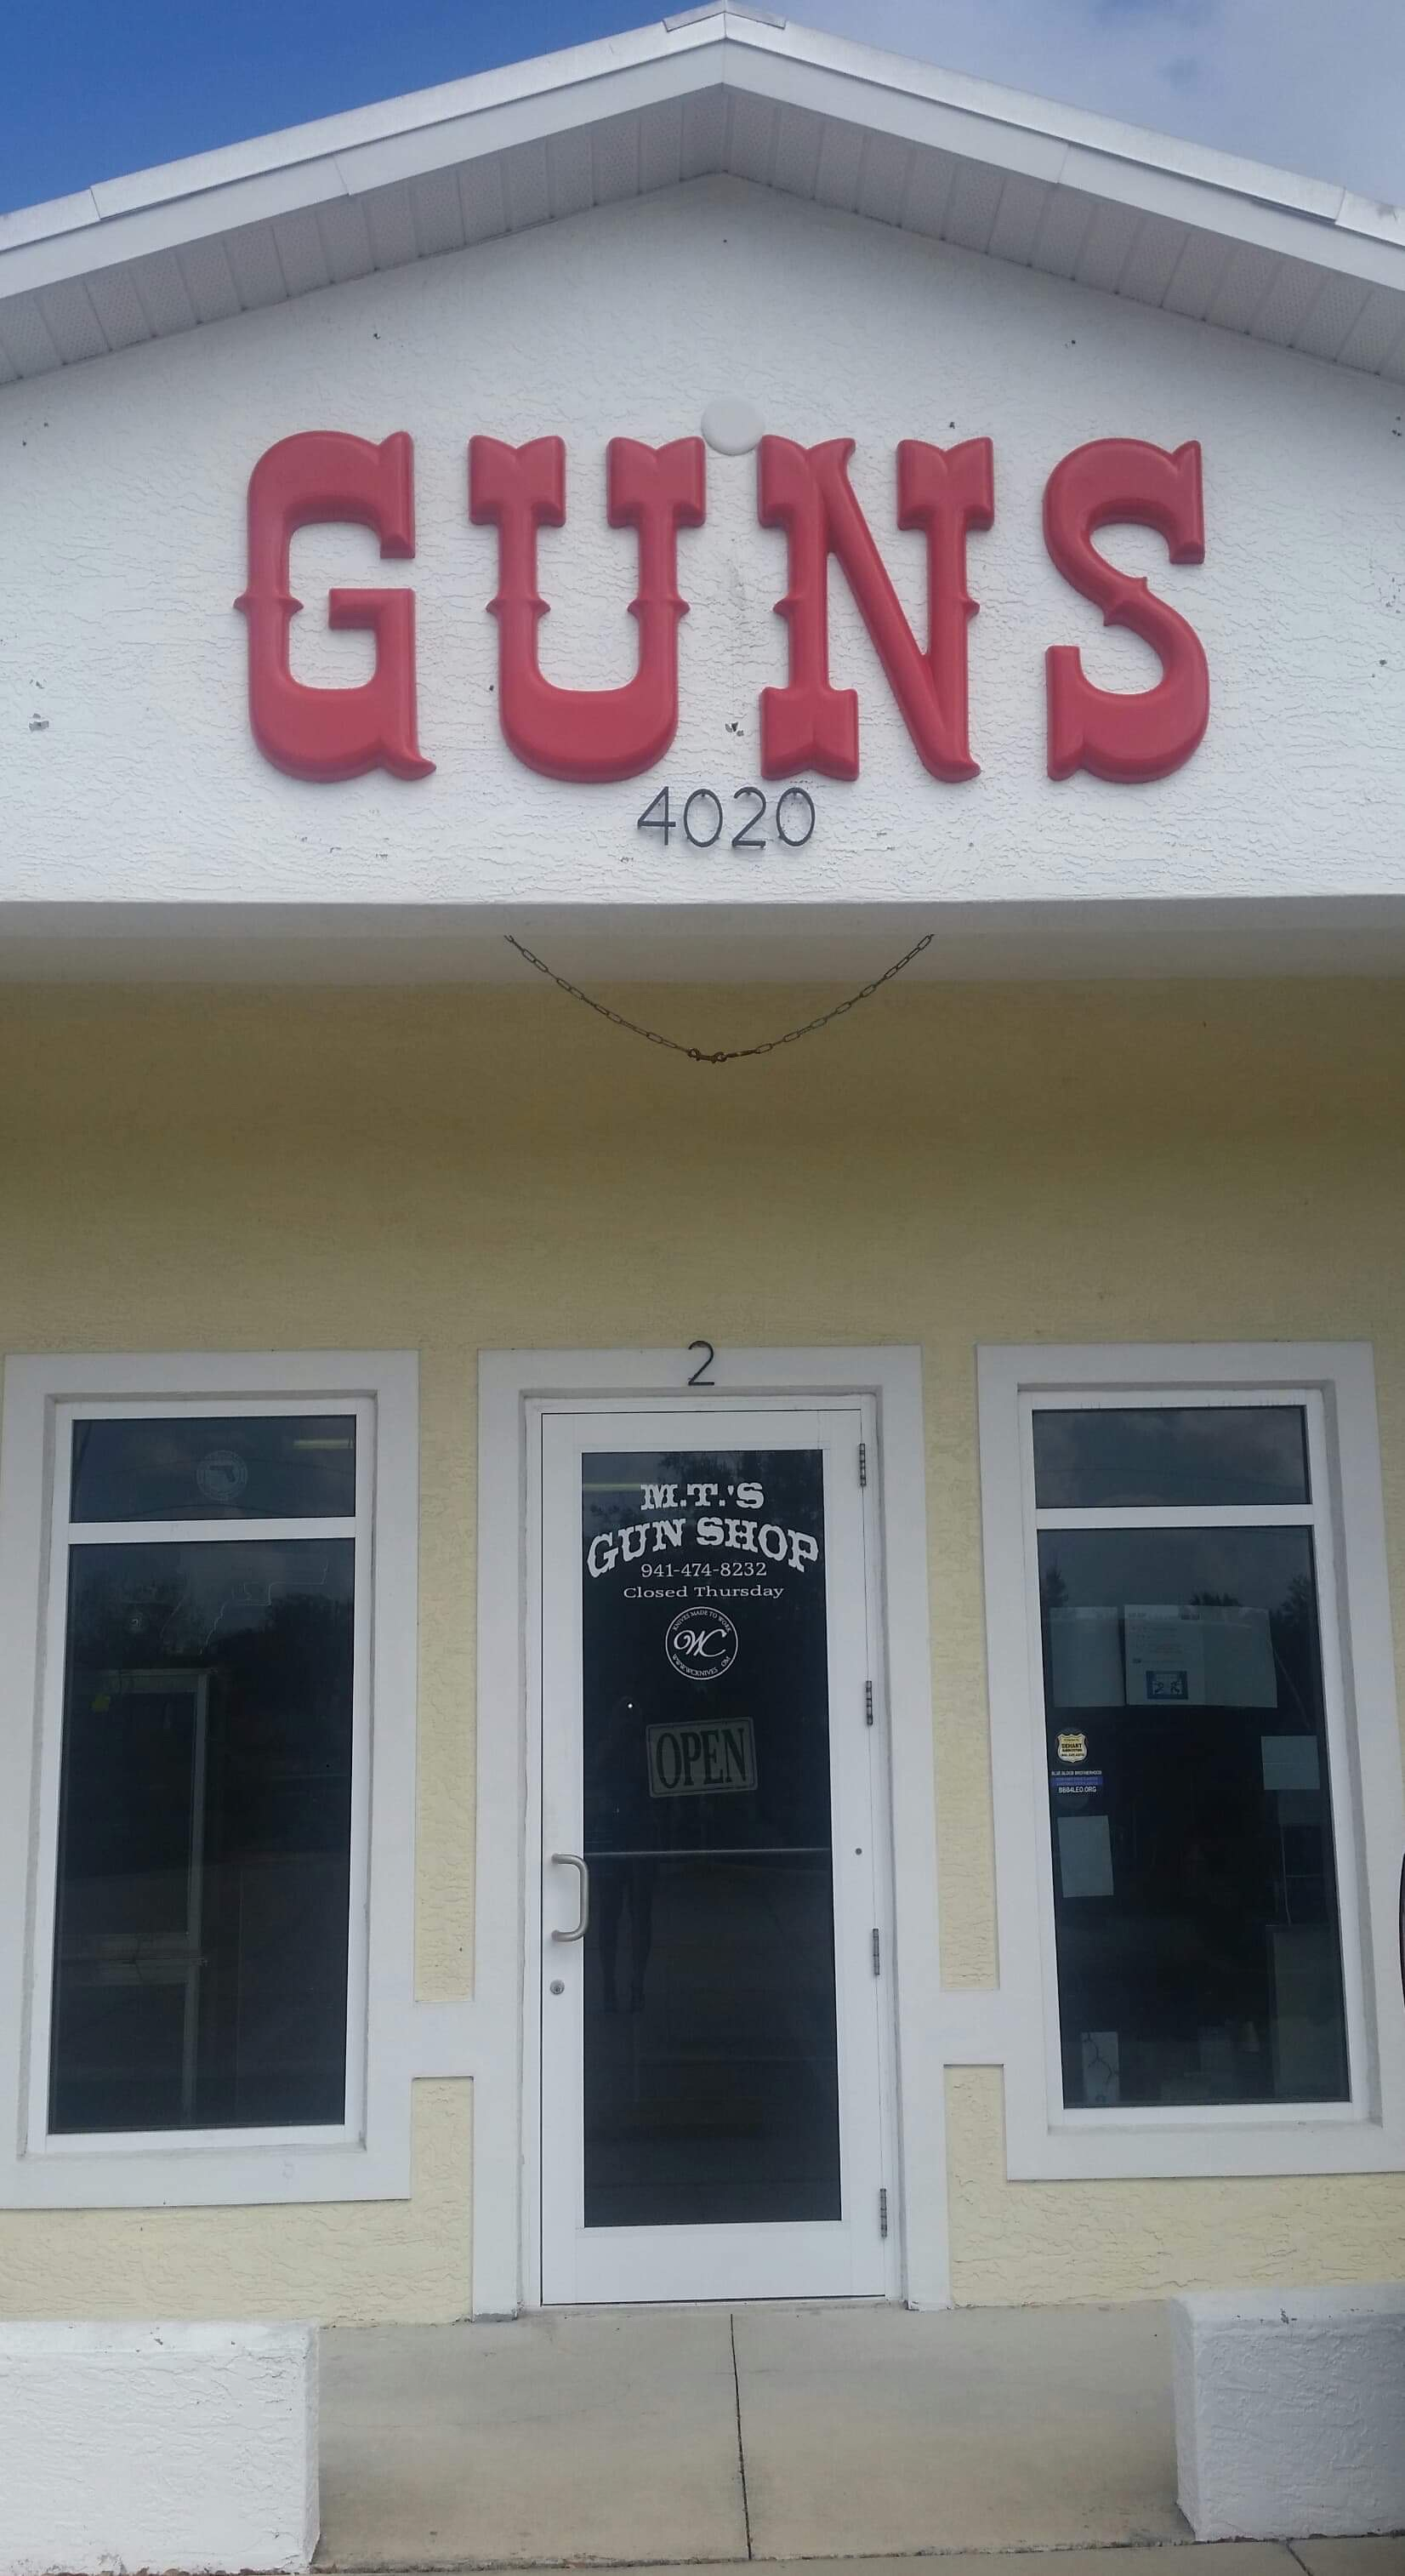 M.T.'s Gun Shop. Inc. - 4020 N. Access Rd. Unit 2Englewood, FL. 34224Contact Vern Kohlenberg : 941 474 8232Facebook page direct link.NO WEBSITE